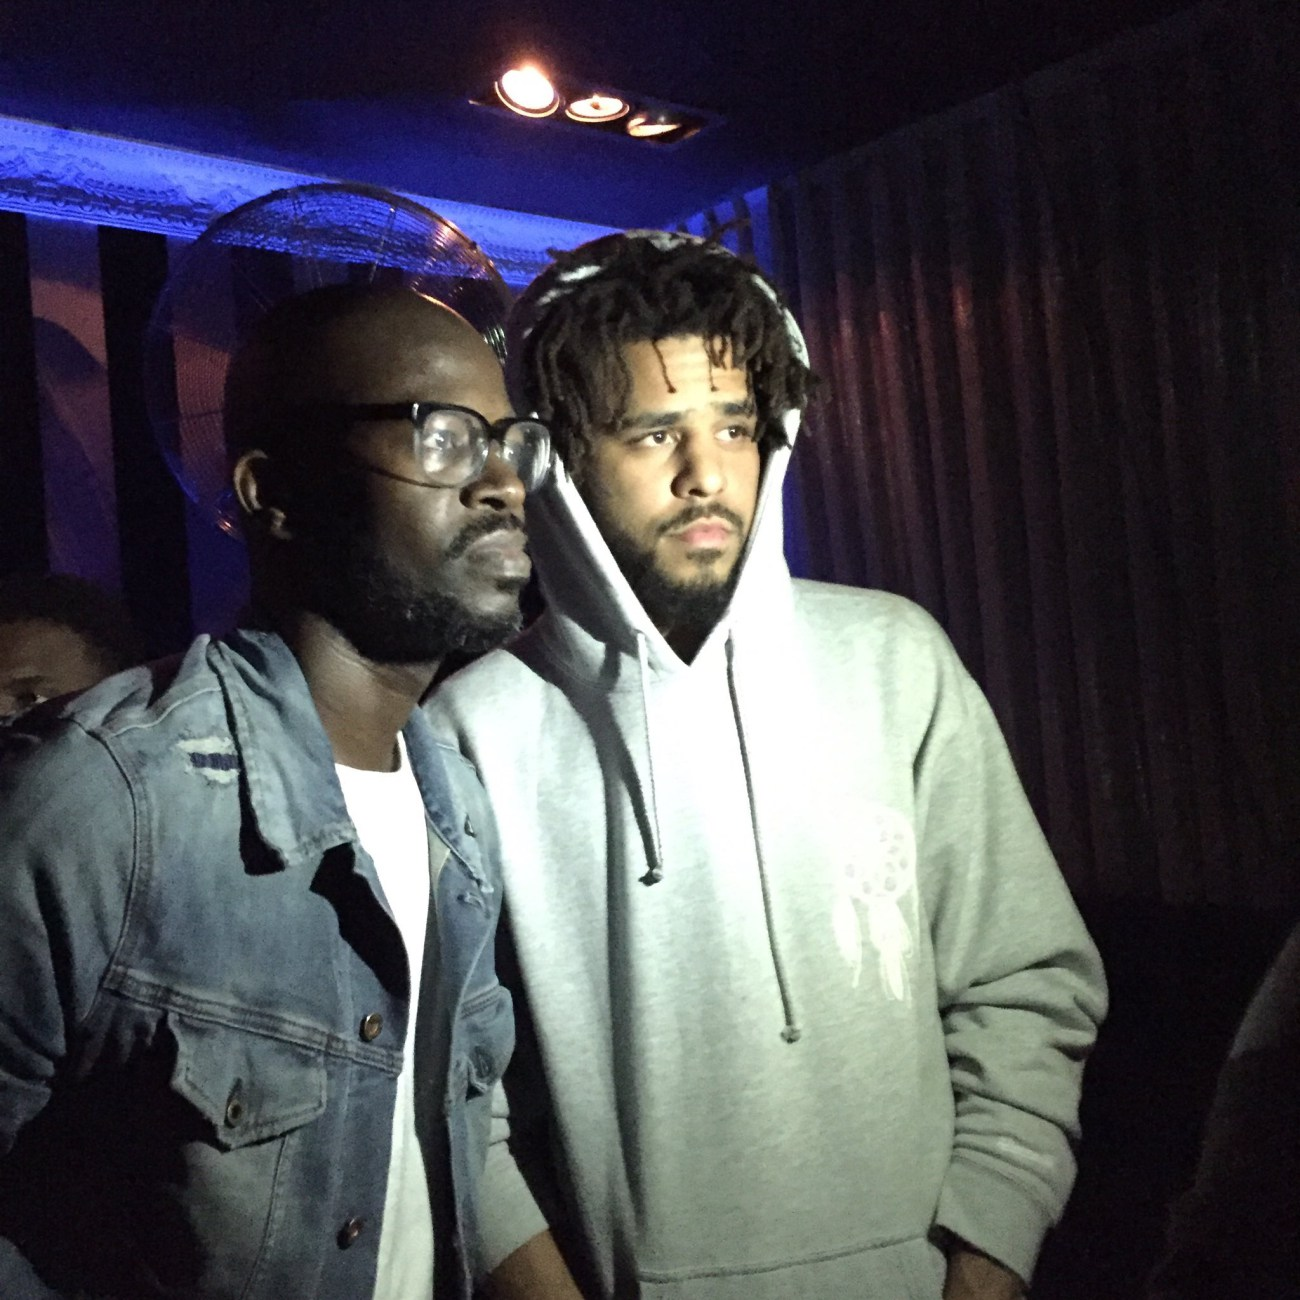 Check Out Snippets Of J.Cole's Electrifying Performance At The Dome